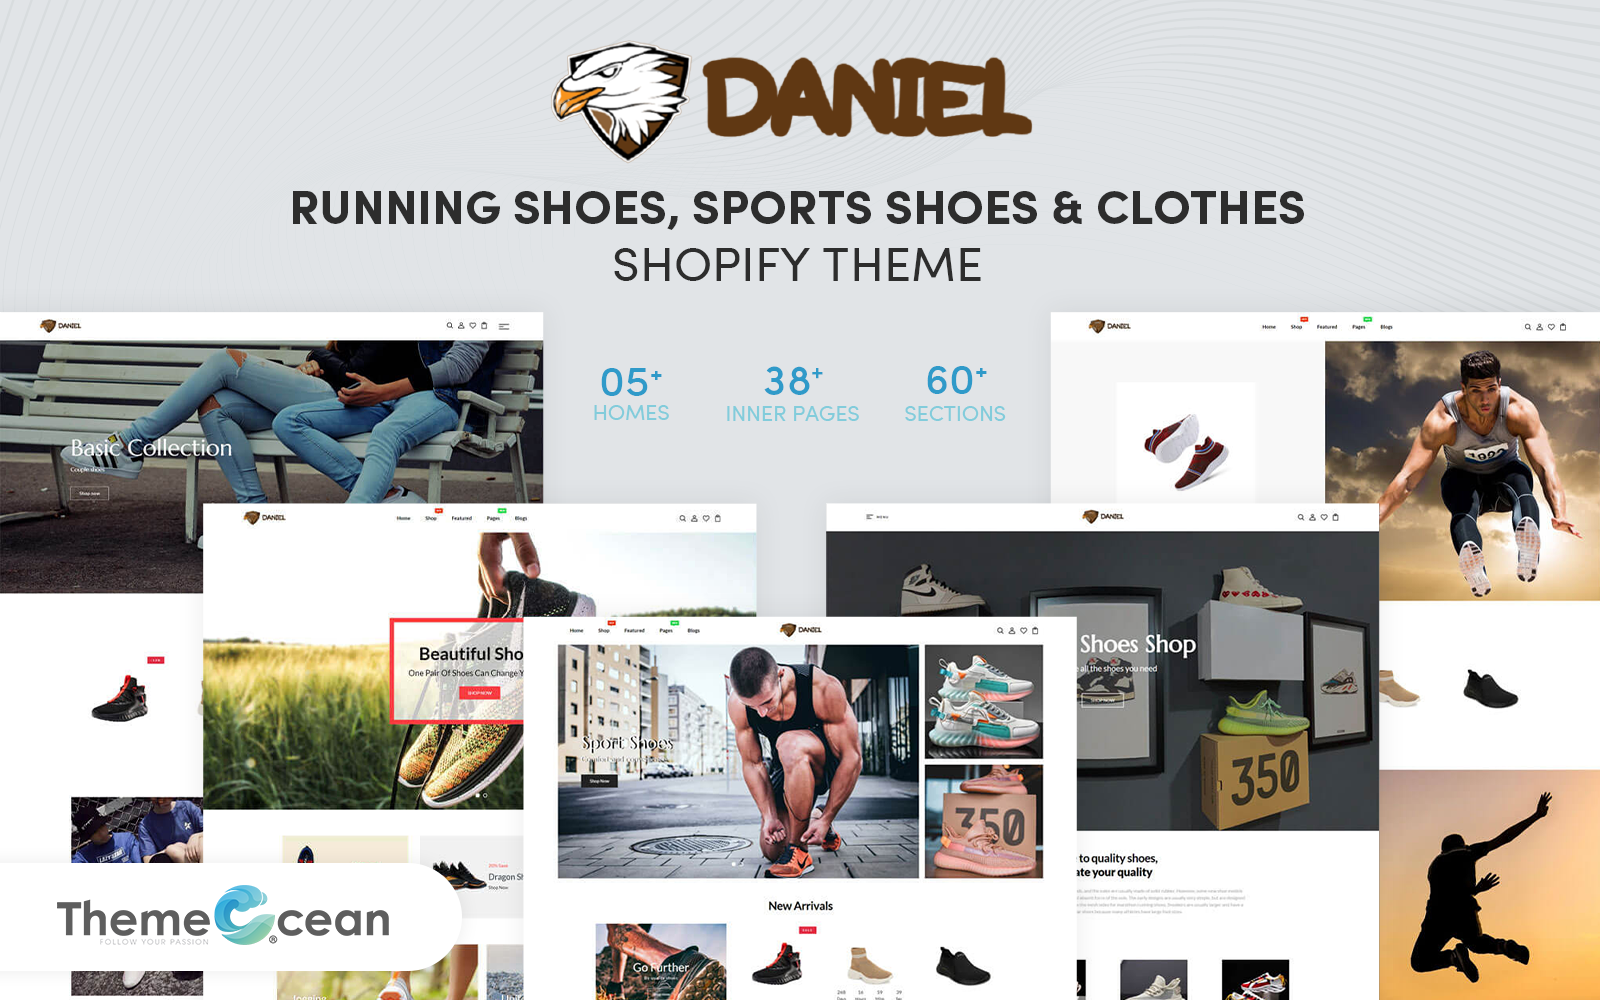 Daniel - Running Shoes, Sports Shoes & Clothes Shopify Theme